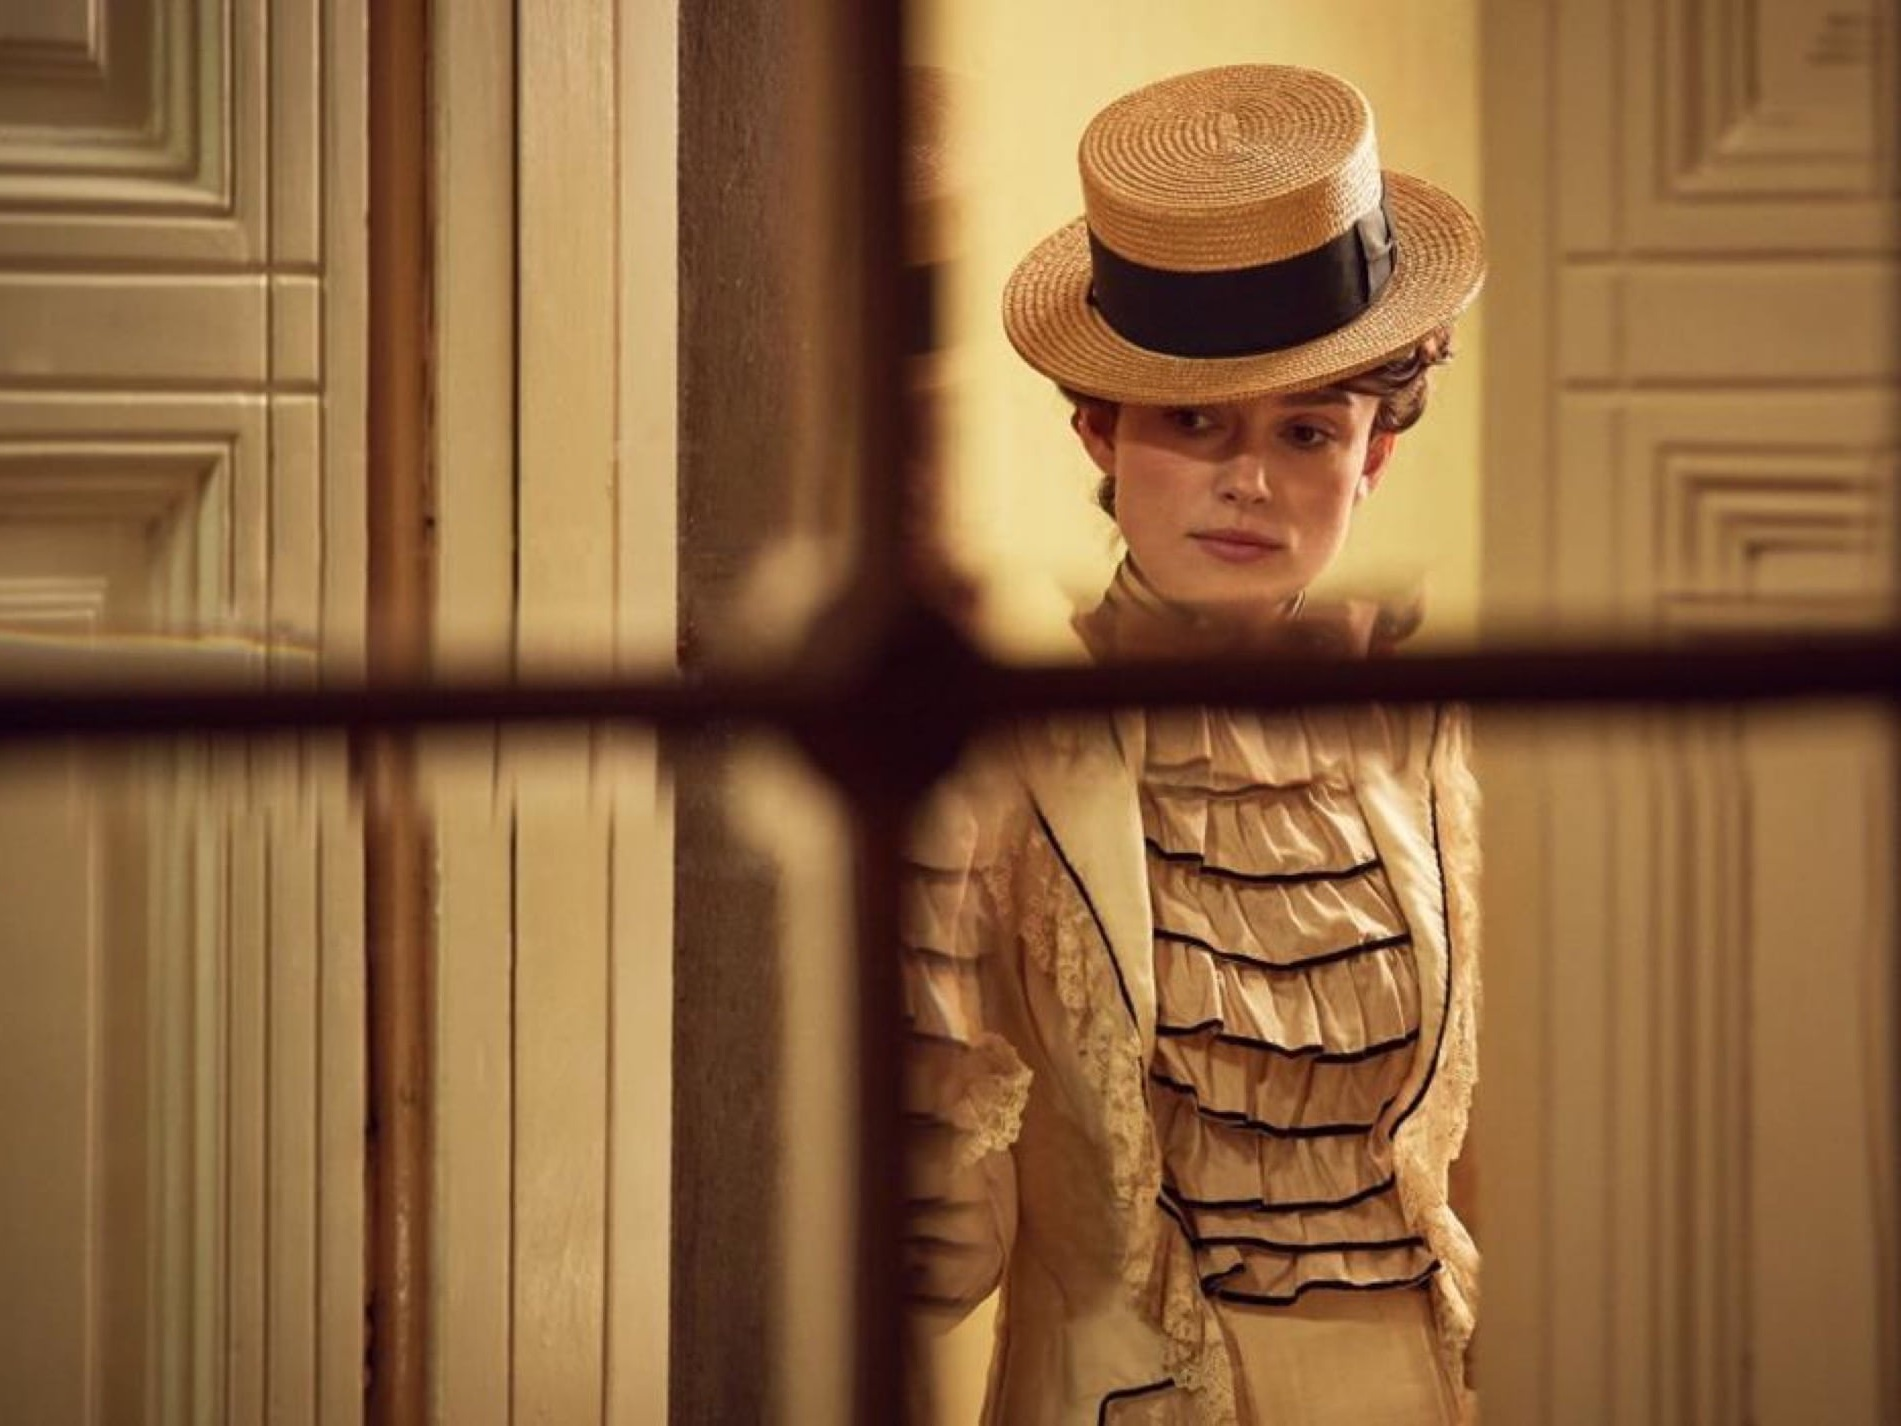 Colette - August 17, 2019 - 7pmKeira Knightley stars in this historical drama about celebrated French novelist Sidonie-Gabrielle Colette, whose provocative debut — falsely credited to her husband — becomes the toast of Paris, triggering a battle for identity, equality, and self-determination at the dawn of the feminist age. Colette was not your average early-20th-century woman and Colette is not your average period drama.PG | 112 min